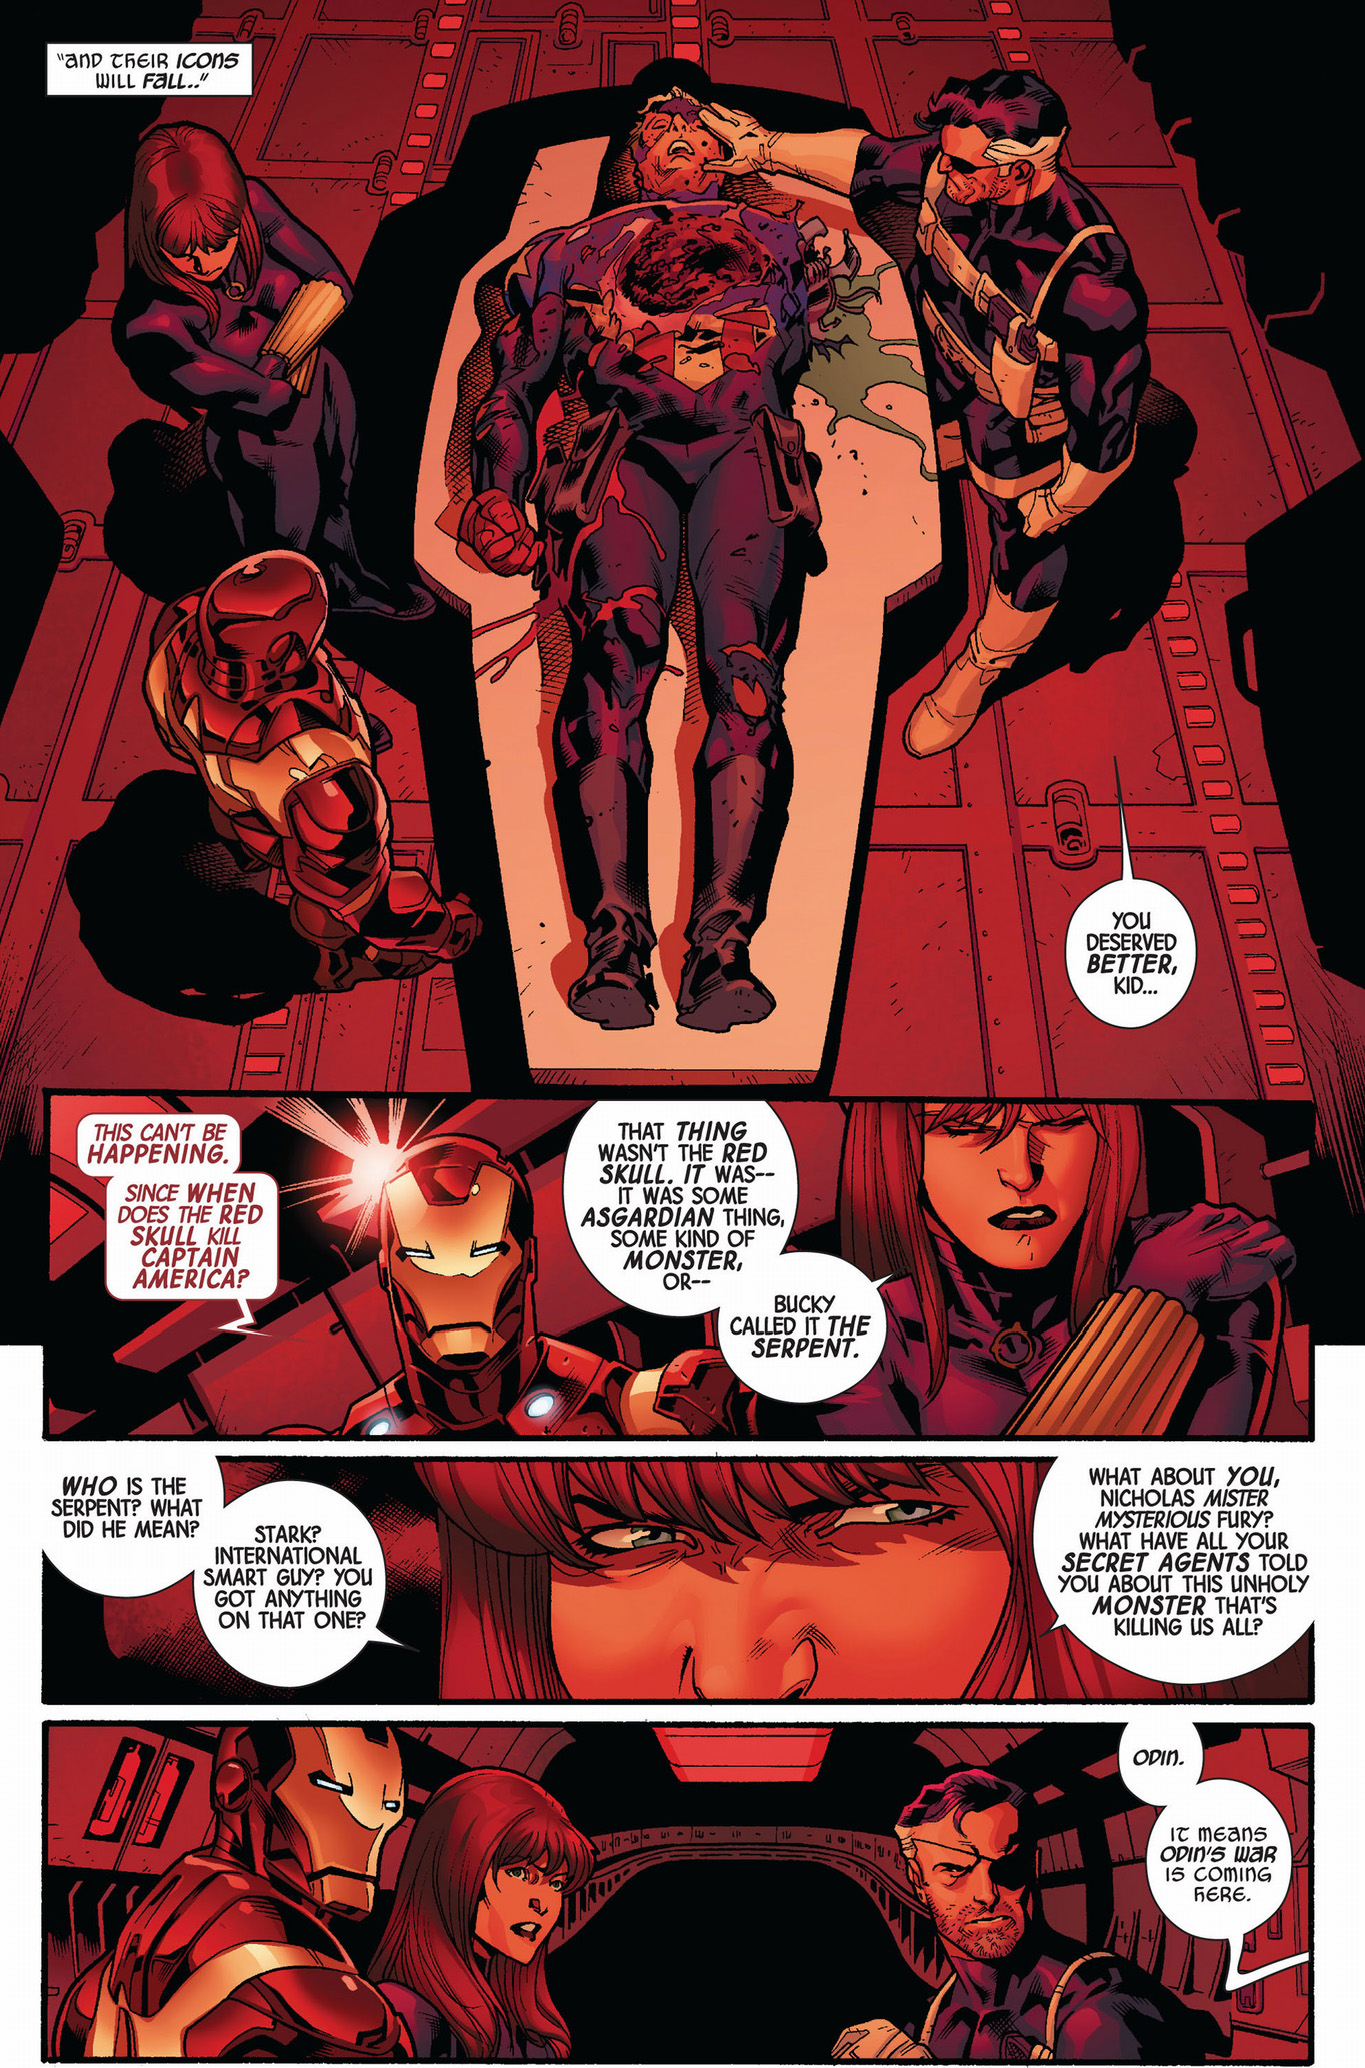 steve rogers becomes captain america (fear itself)